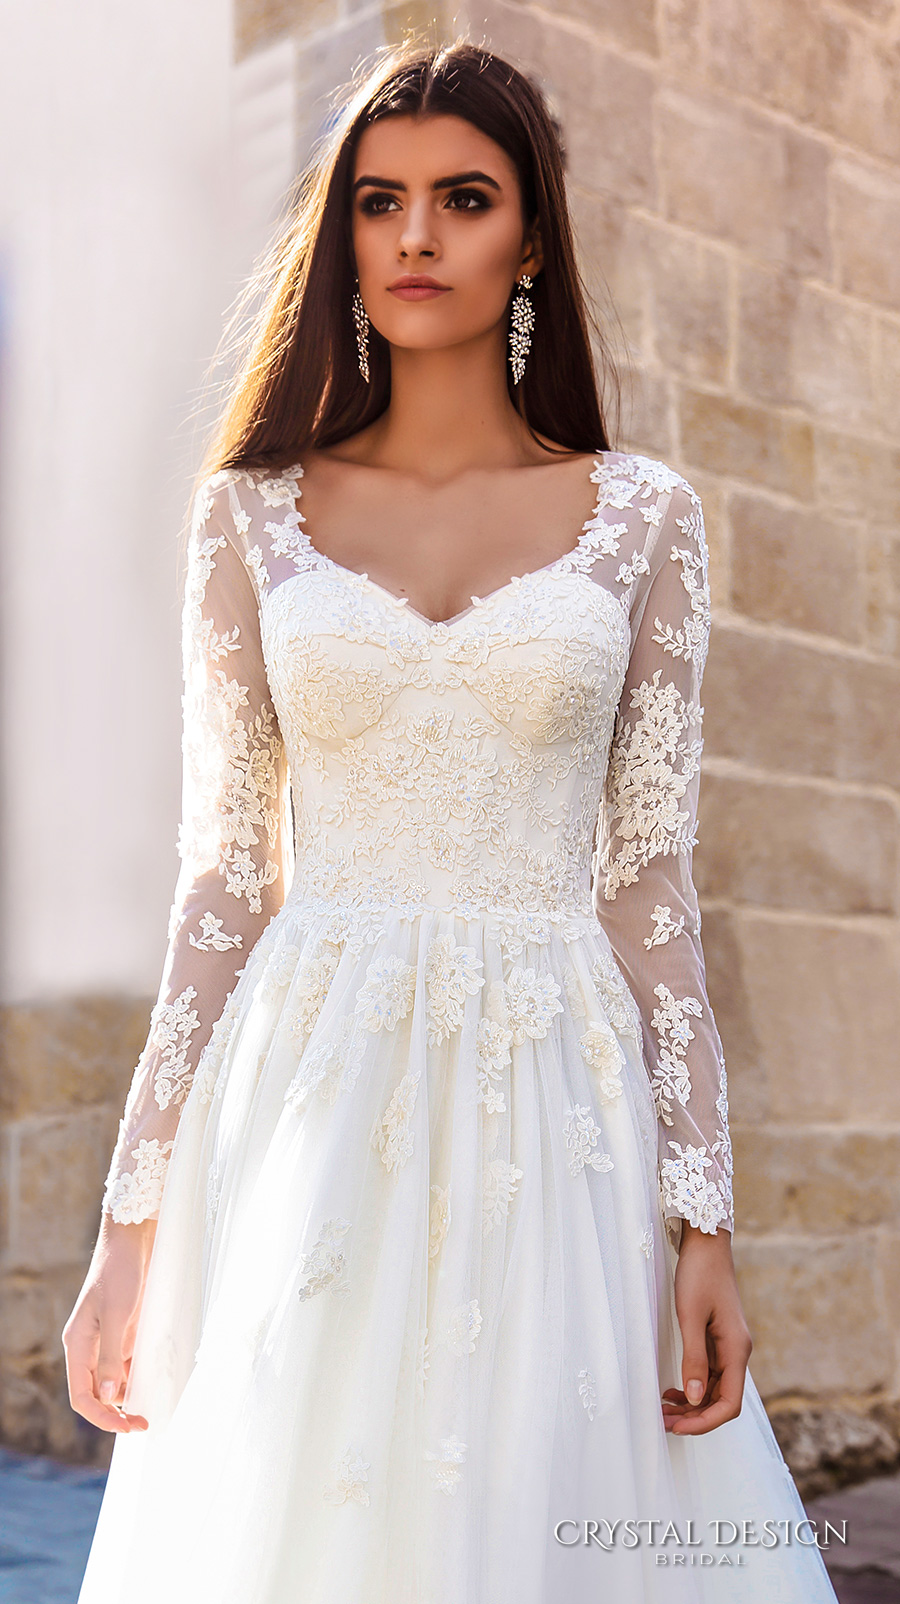 Crystal design 2016 wedding dresses wedding inspirasi for Elegant long sleeve wedding dresses